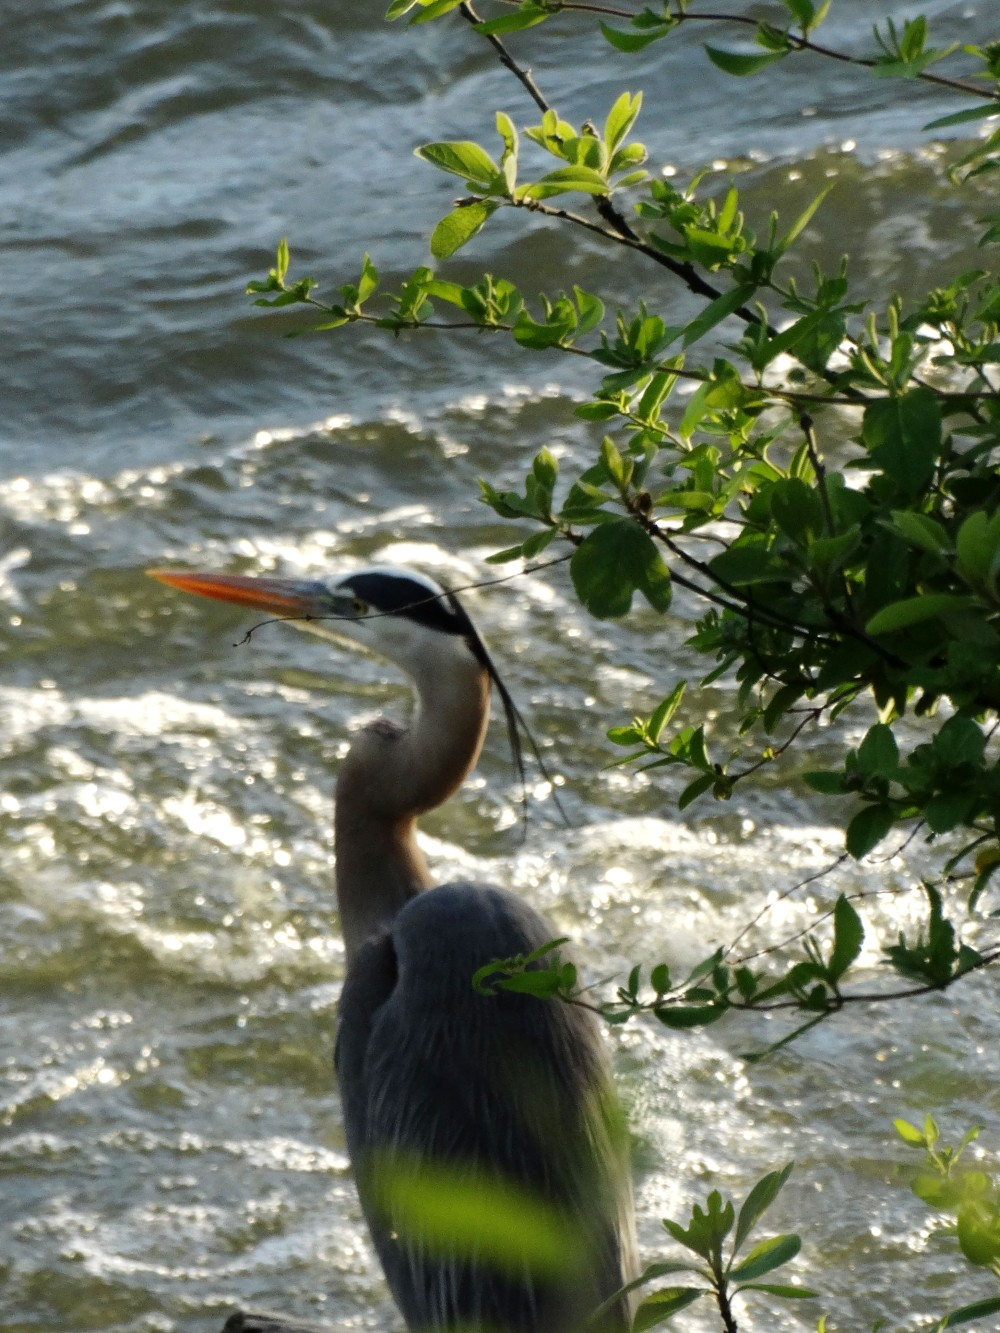 Close-up shot of a Great Blue Heron next to a river.